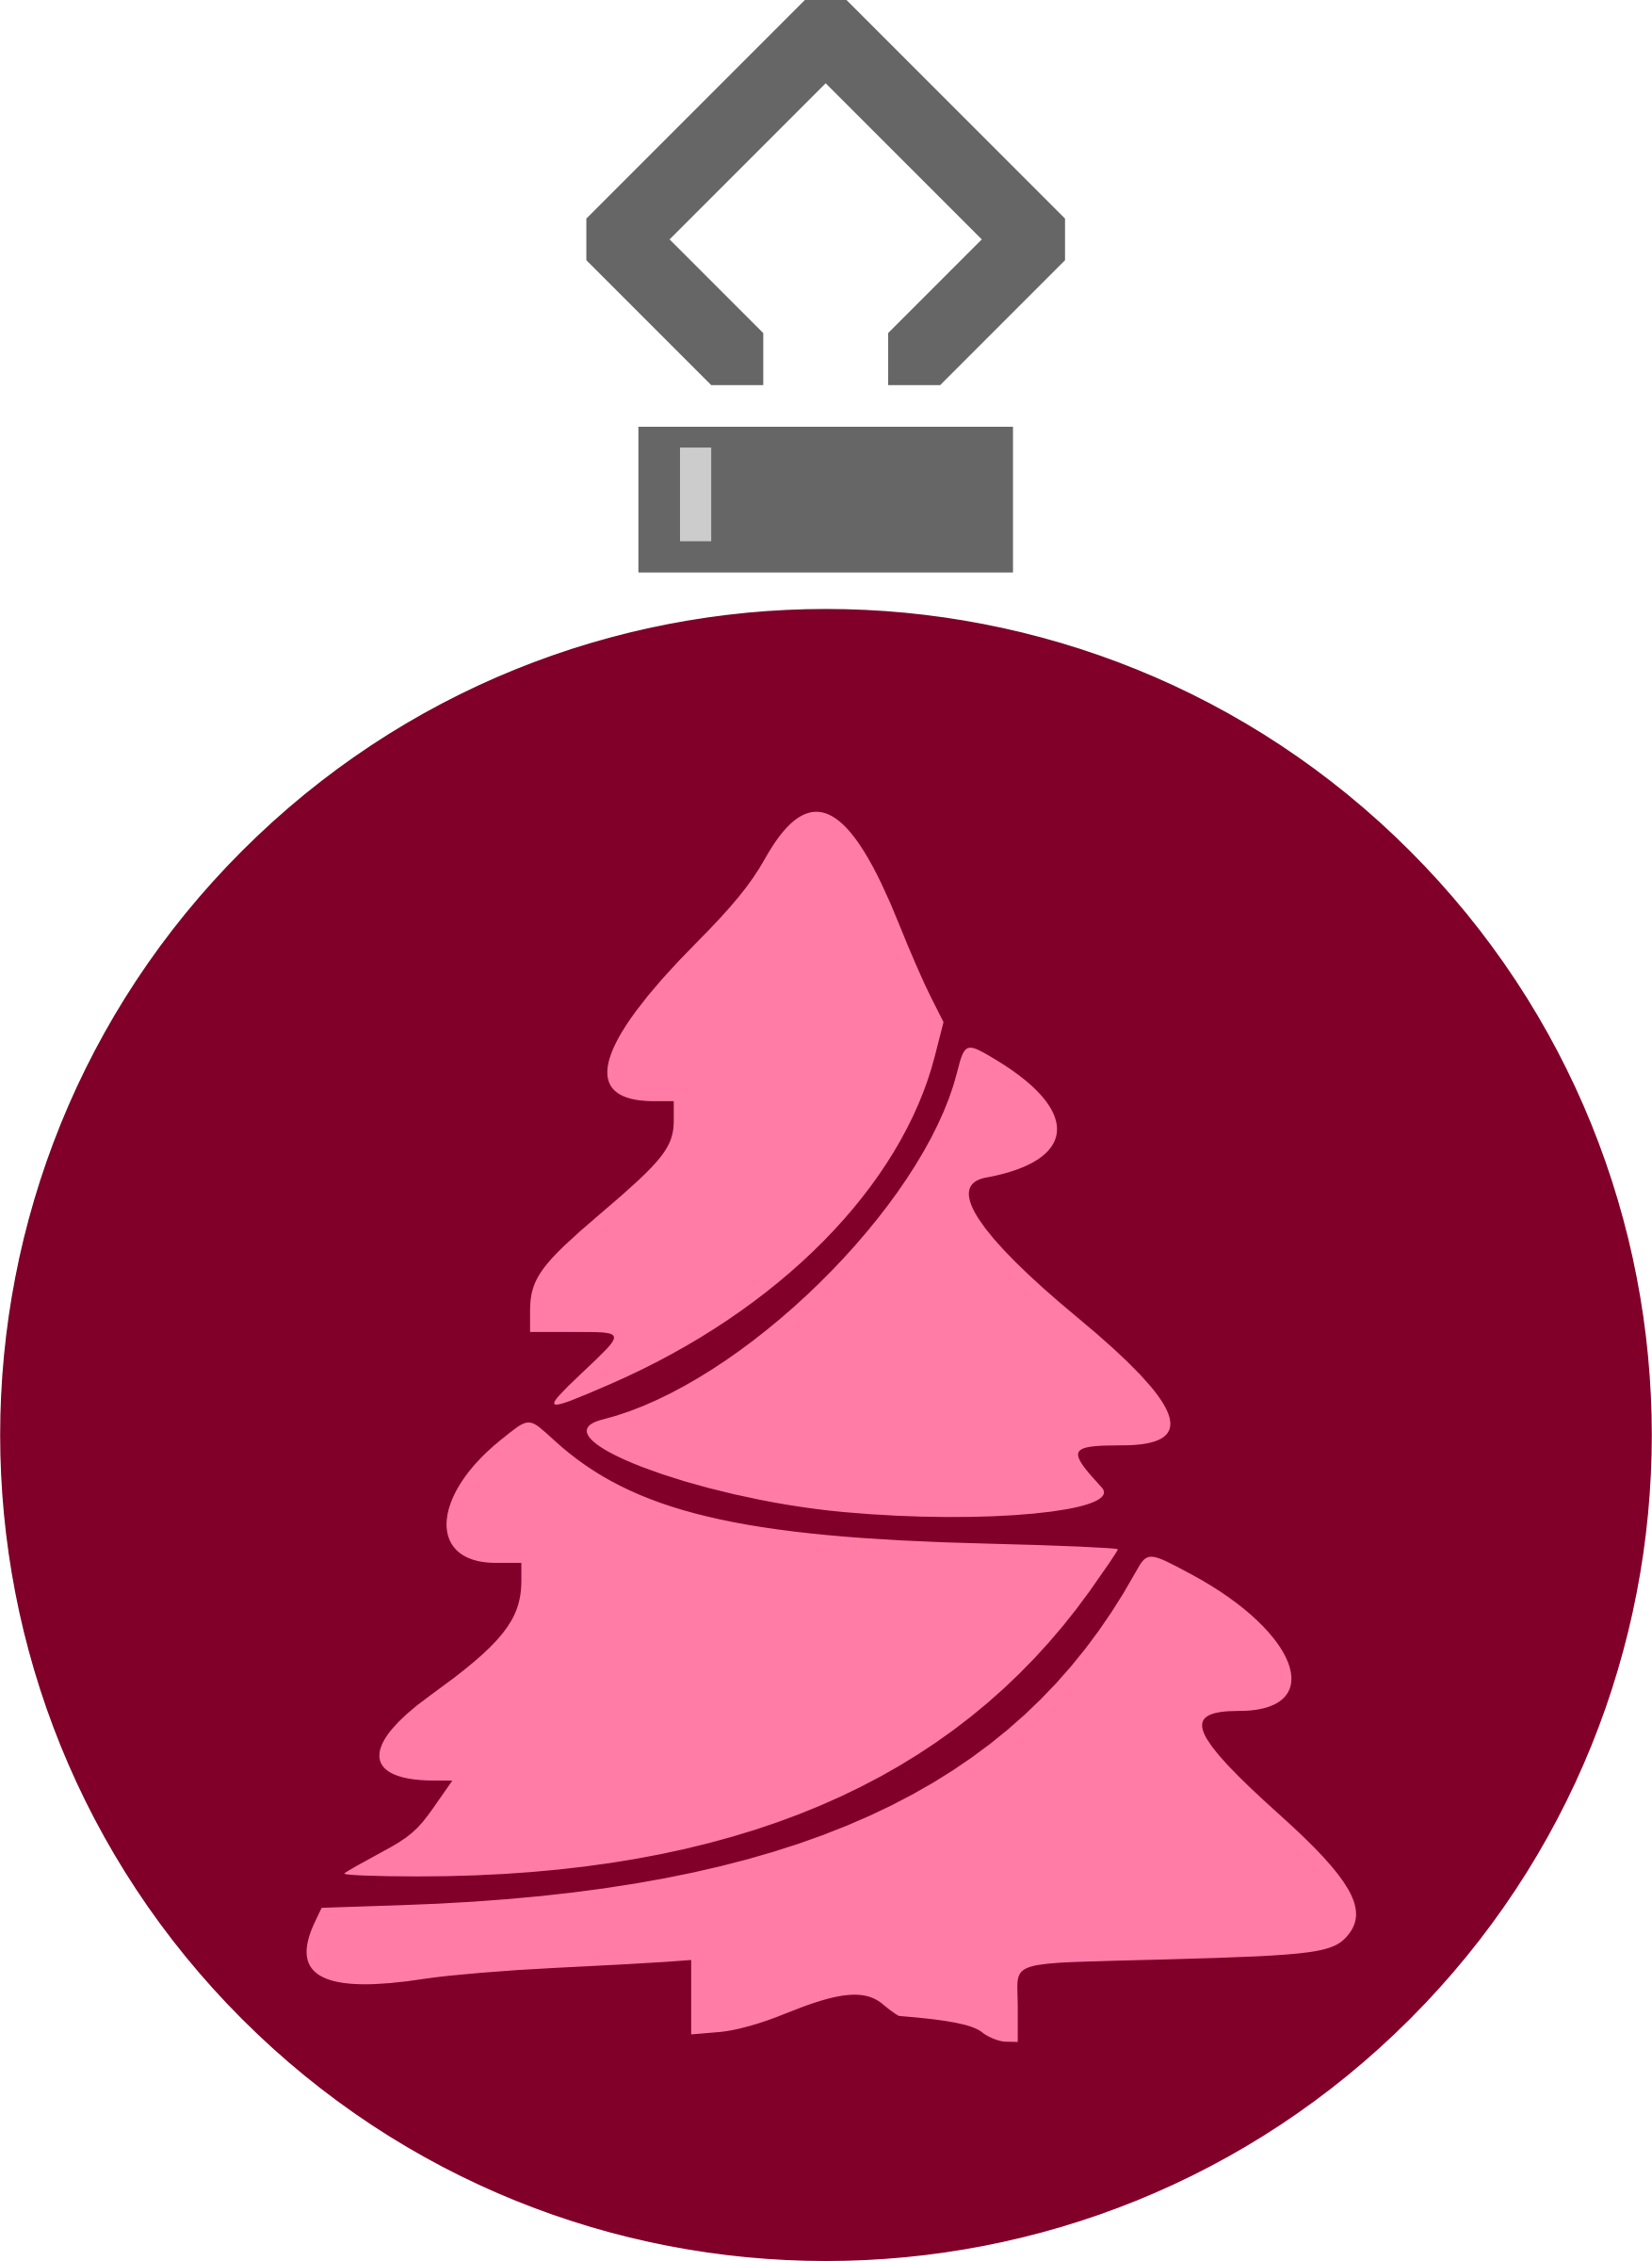 Simple tree bauble 11 (colour) by Firkin